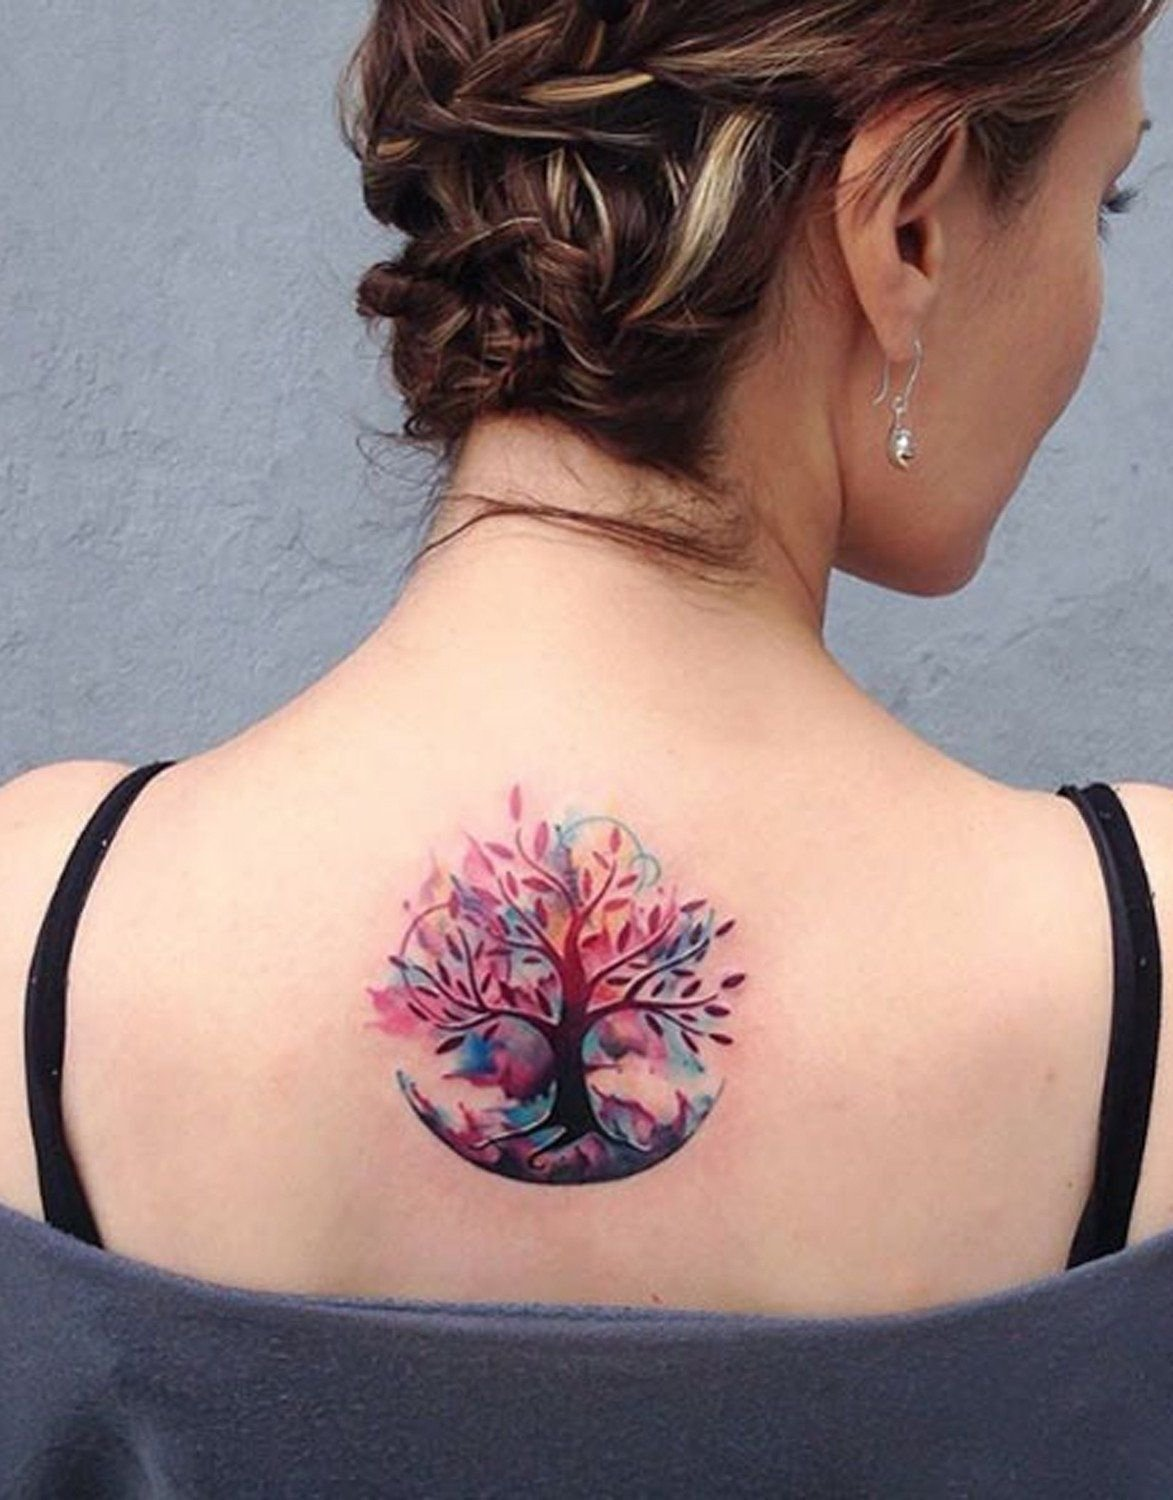 10 Spectacular Best Tattoo Ideas For Women unique and cool tree of life family tree watercolor back tattoo 1 2020